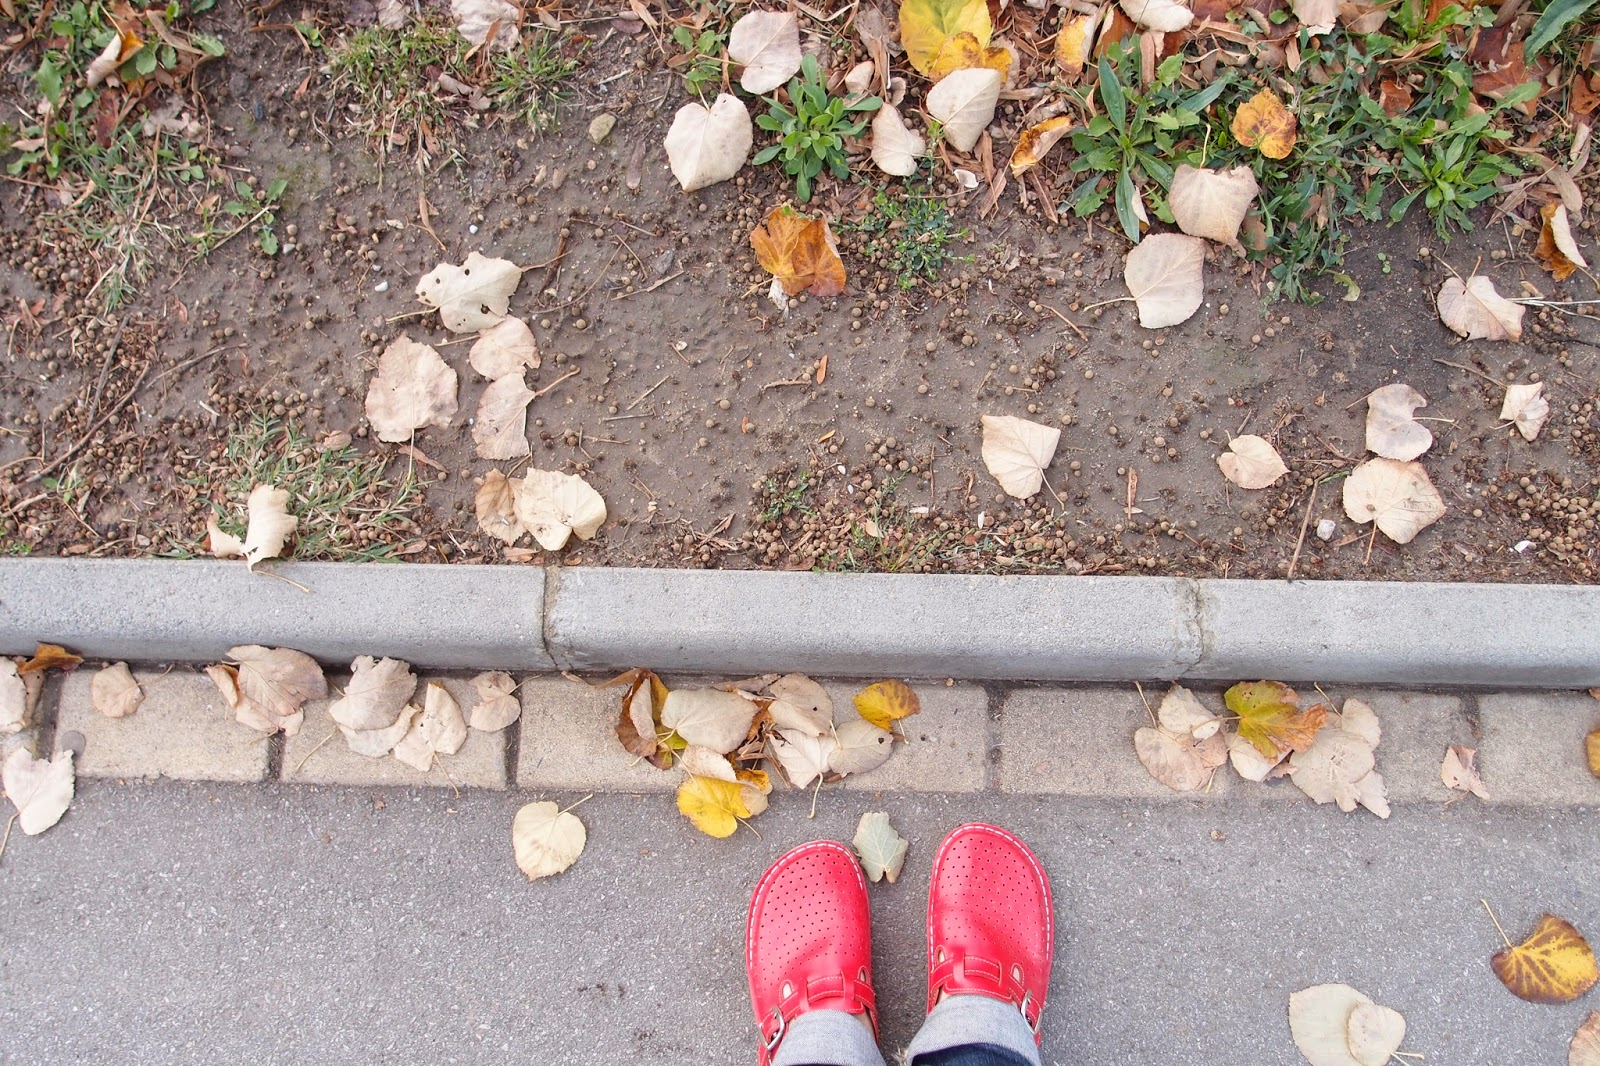 early autumn and almost bare feet